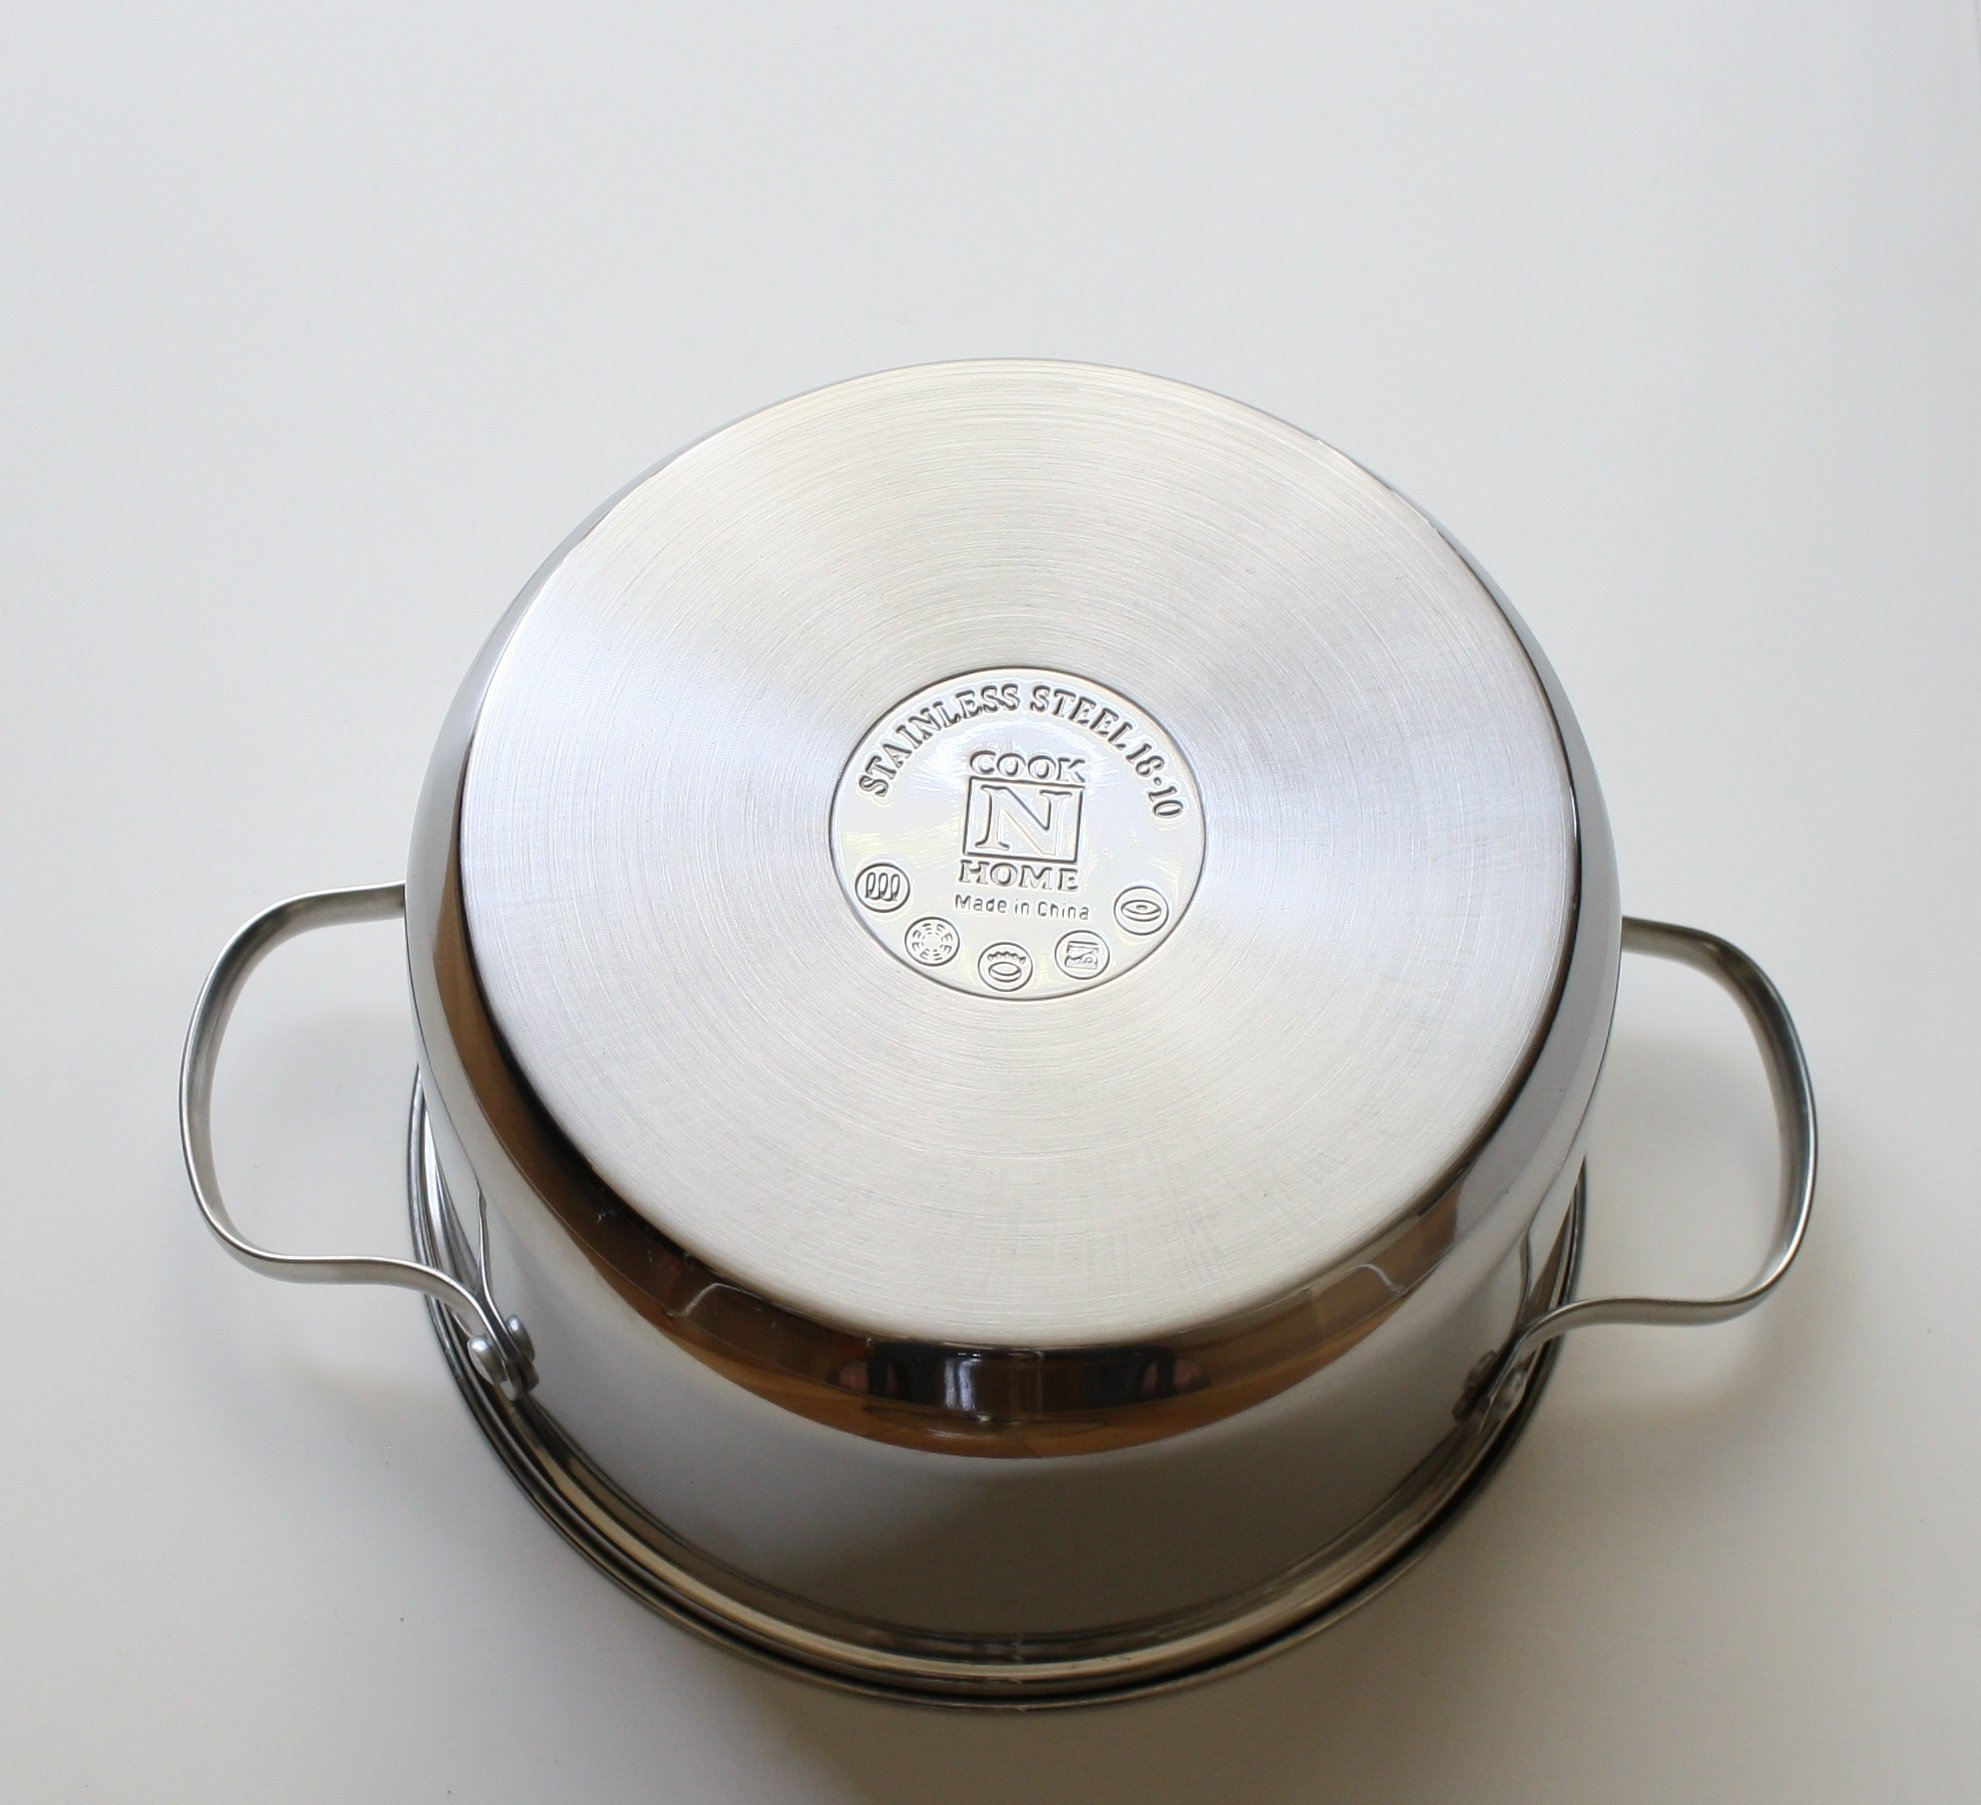 Cook N Home NC-00313 Double Boiler Steamer 4Qt silver by Cook N Home (Image #4)